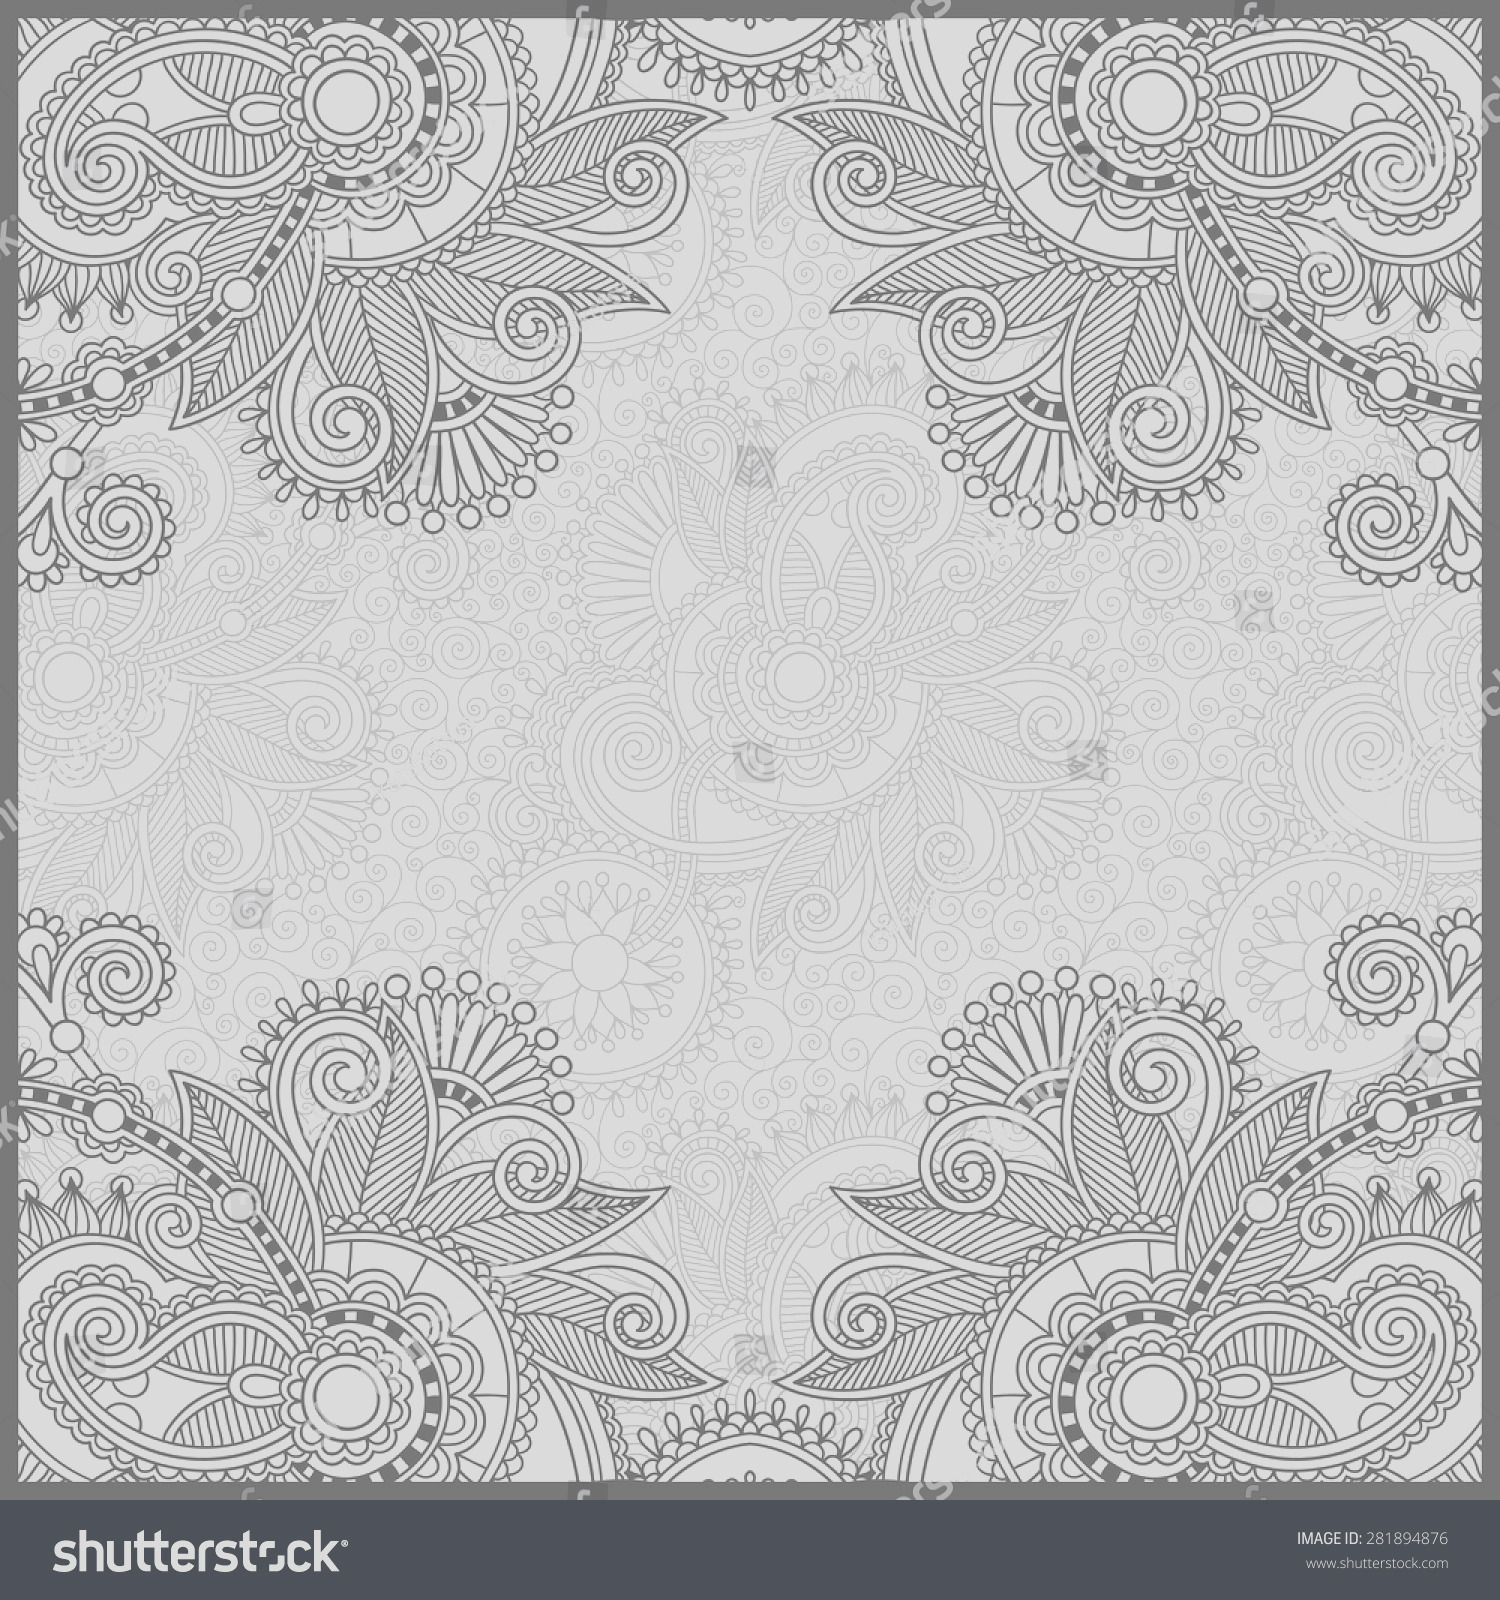 stock vector unique coloring book square page for adults floral authentic carpet design joy to older children